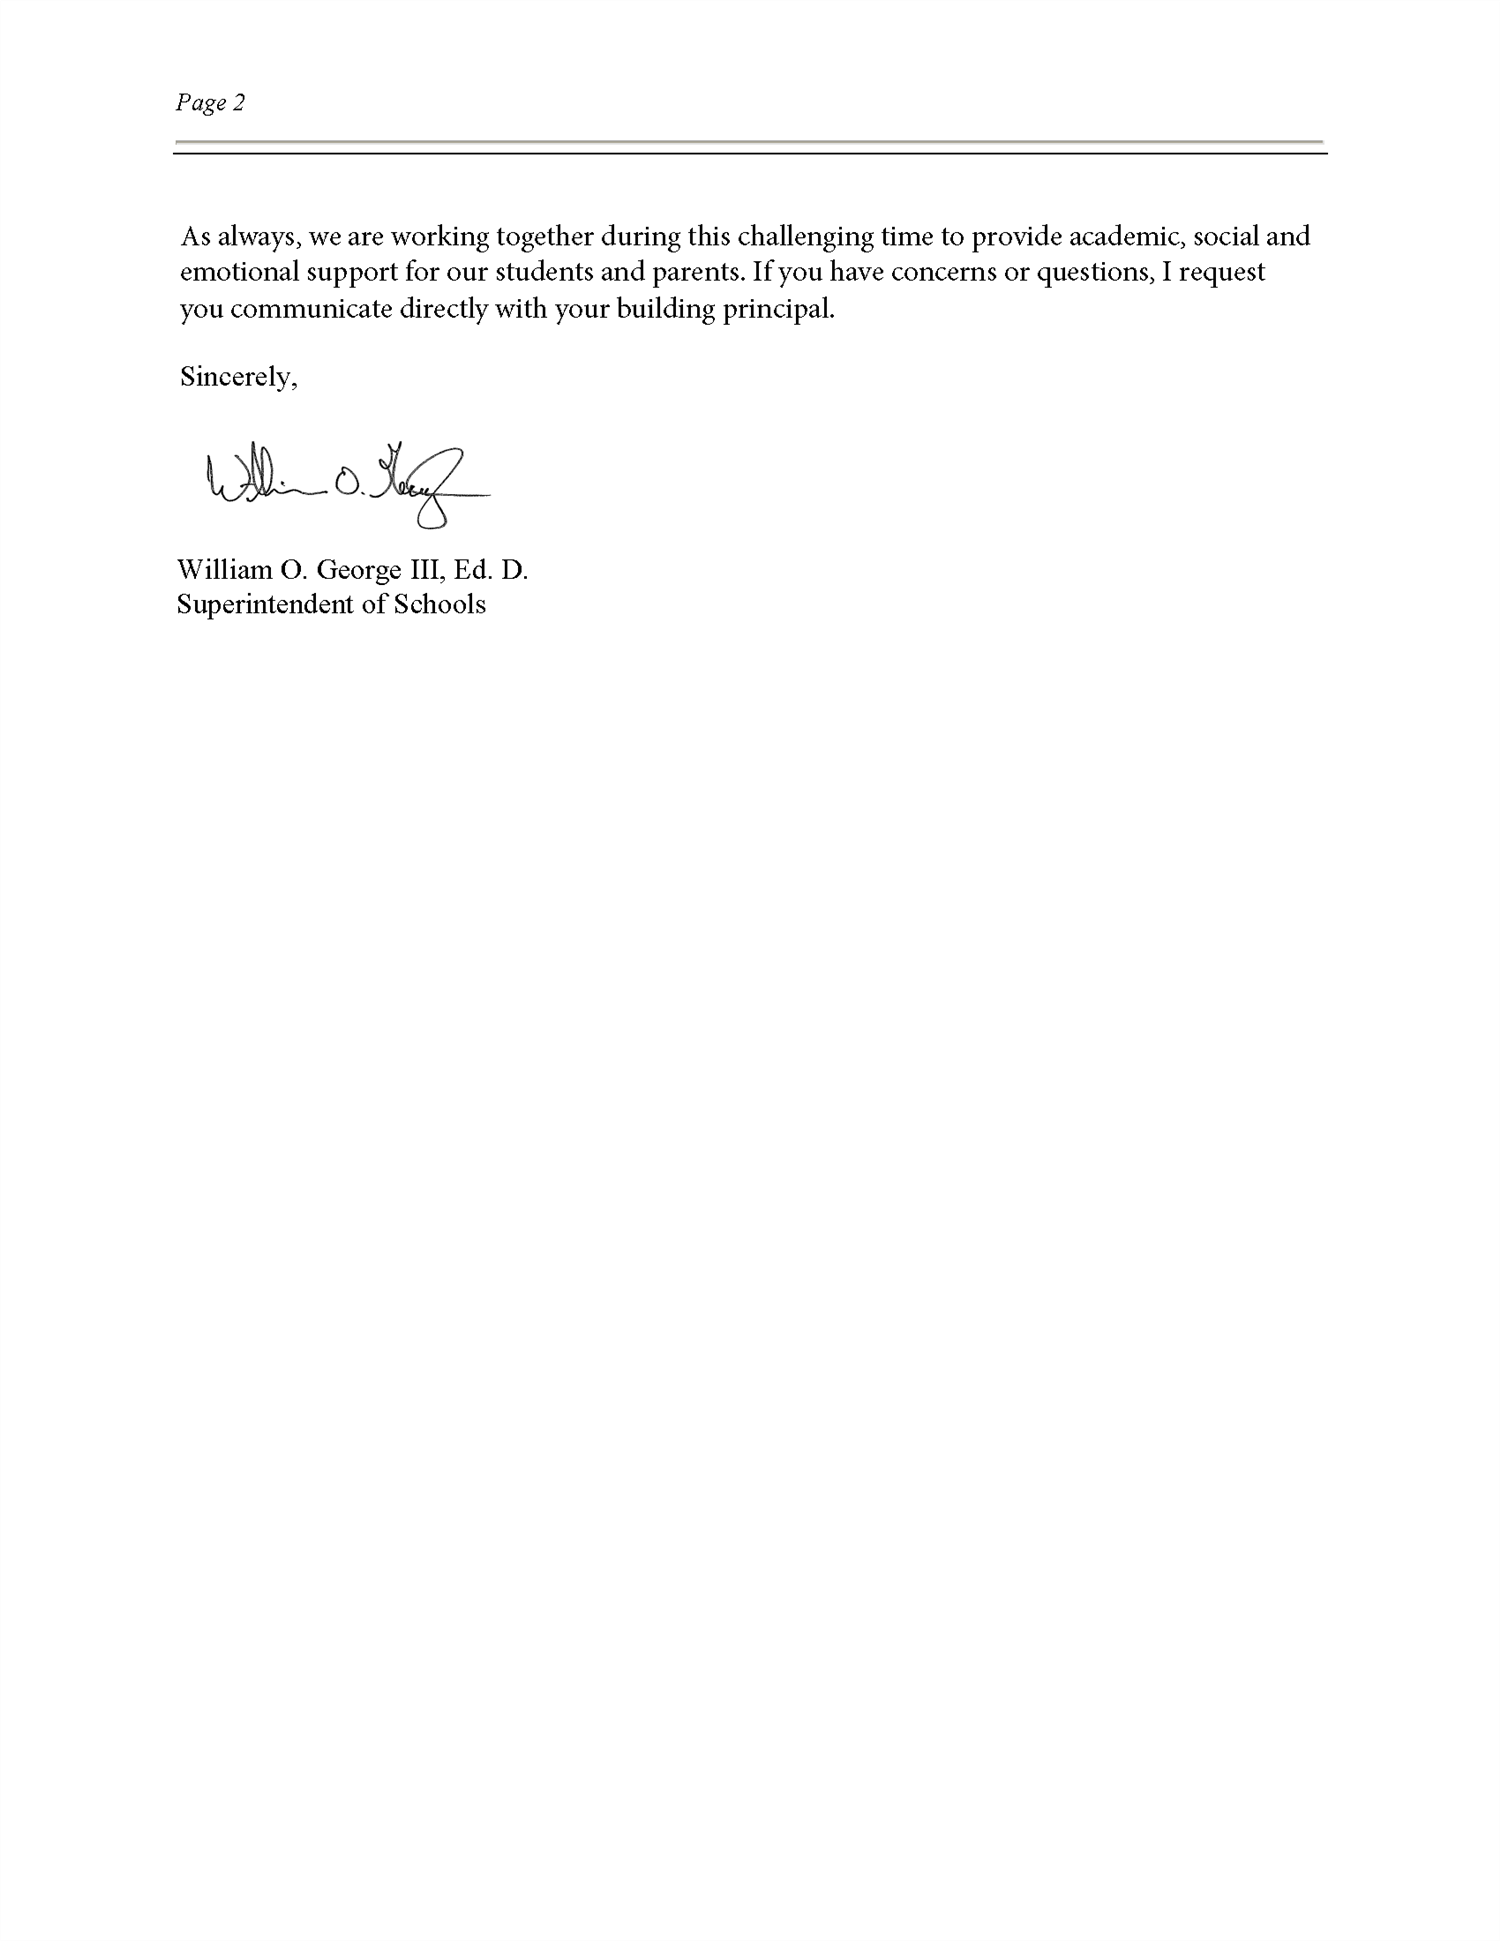 Dr. George's Clarification Letter (Page 2)